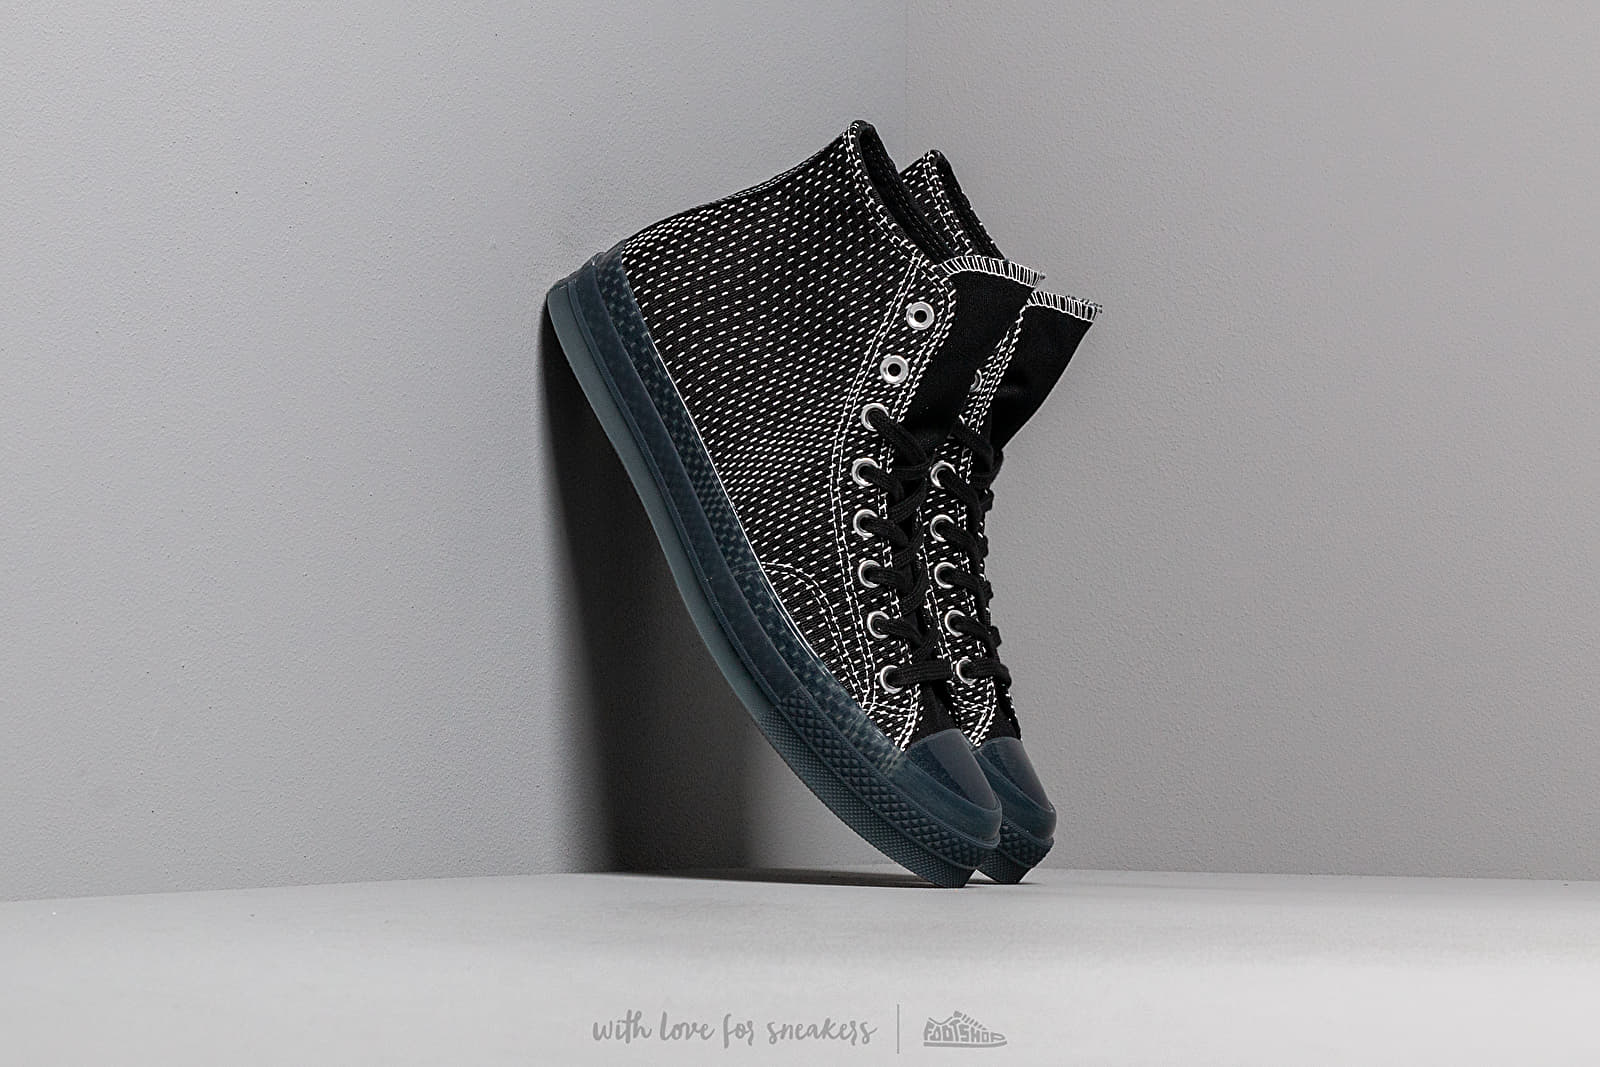 Zapatillas Hombre Converse Chuck Taylor All Star 70 Black/ White/ Cool Grey